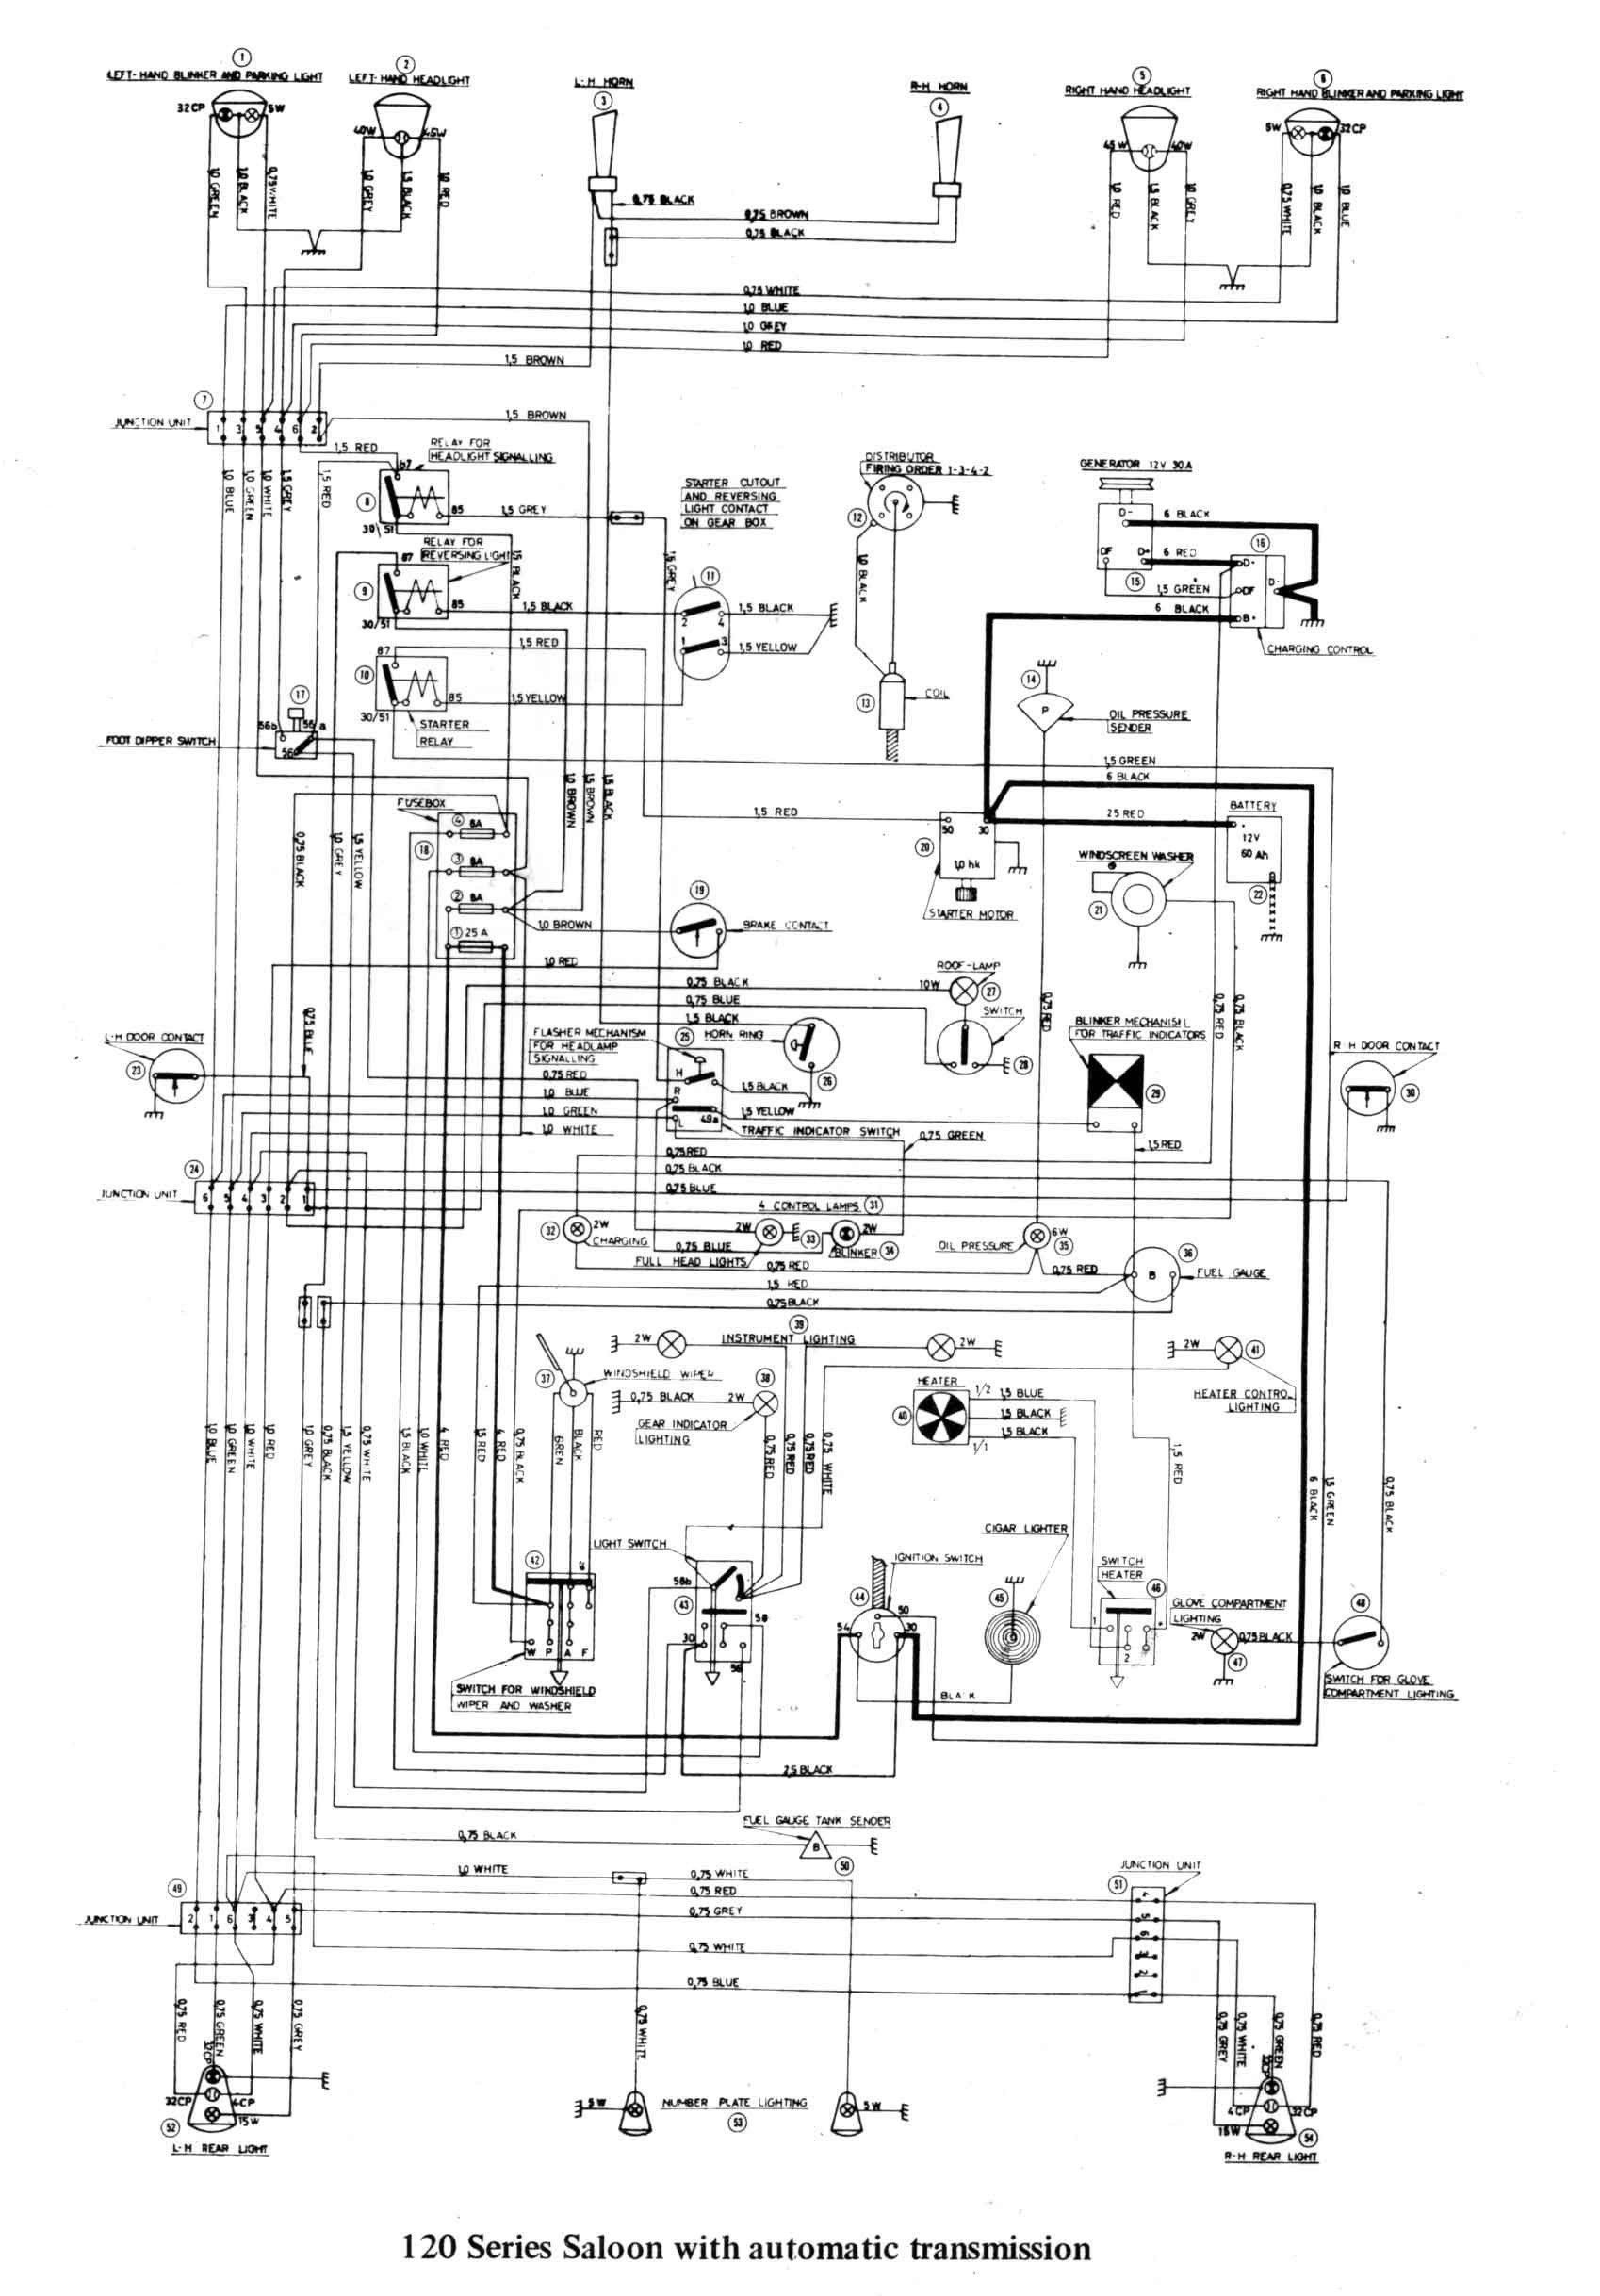 volvo brakes, volvo 740 diagram, volvo exhaust, volvo yaw rate sensor, volvo dashboard, volvo girls, volvo s60 fuse diagram, volvo fuse box location, international truck electrical diagrams, volvo recall information, volvo xc90 fuse diagram, volvo type r, volvo battery, volvo truck radio wiring harness, volvo tools, volvo relay diagram, volvo sport, volvo maintenance schedule, volvo ignition, volvo snowmobile, on volvo fh12 wiring diagram download